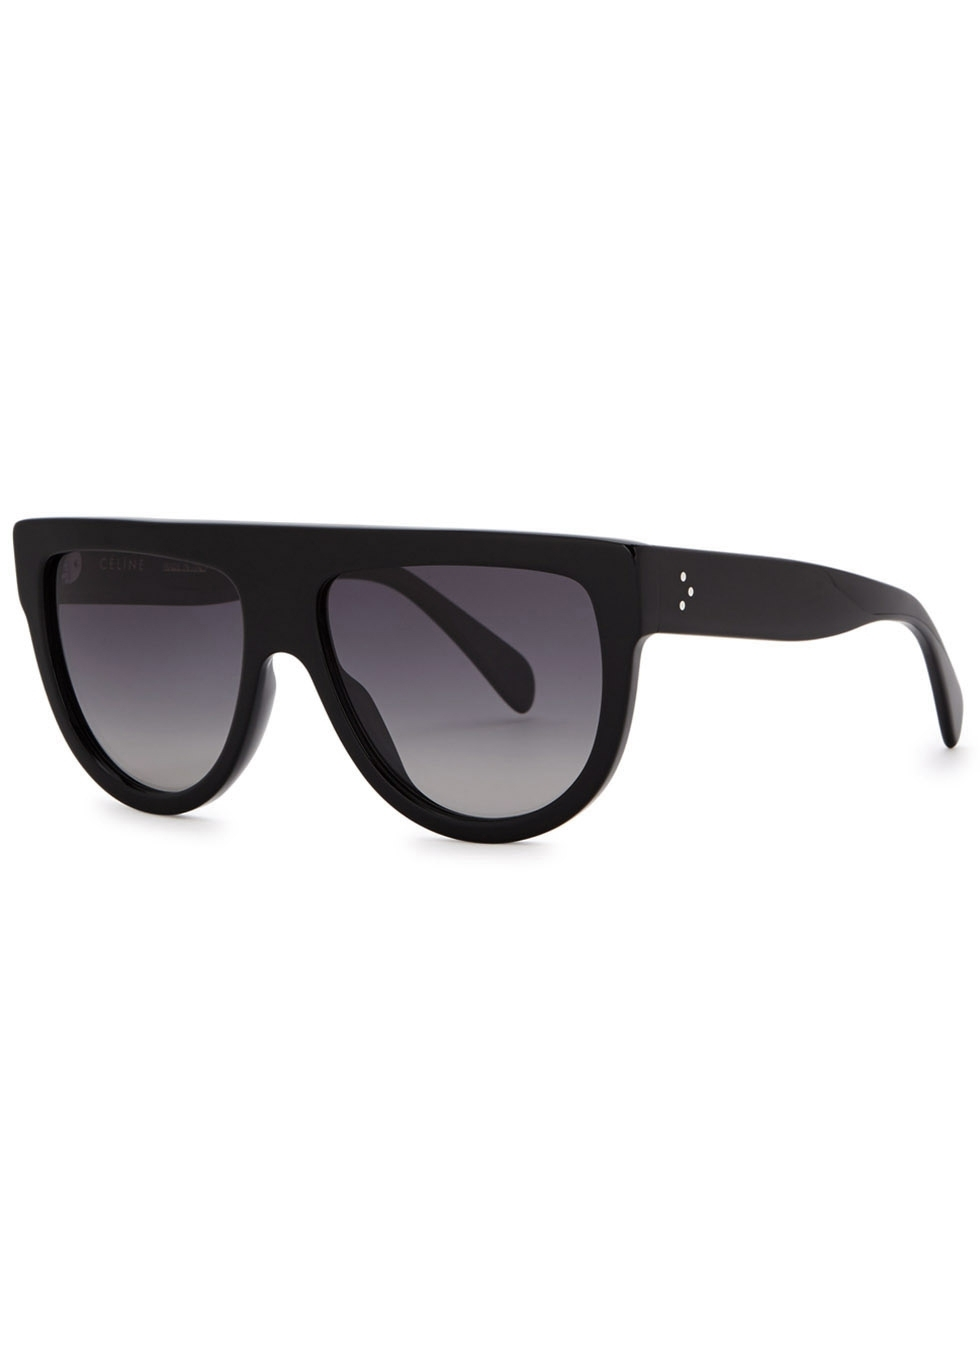 216d85d890e Women s Designer Sunglasses and Eyewear - Harvey Nichols